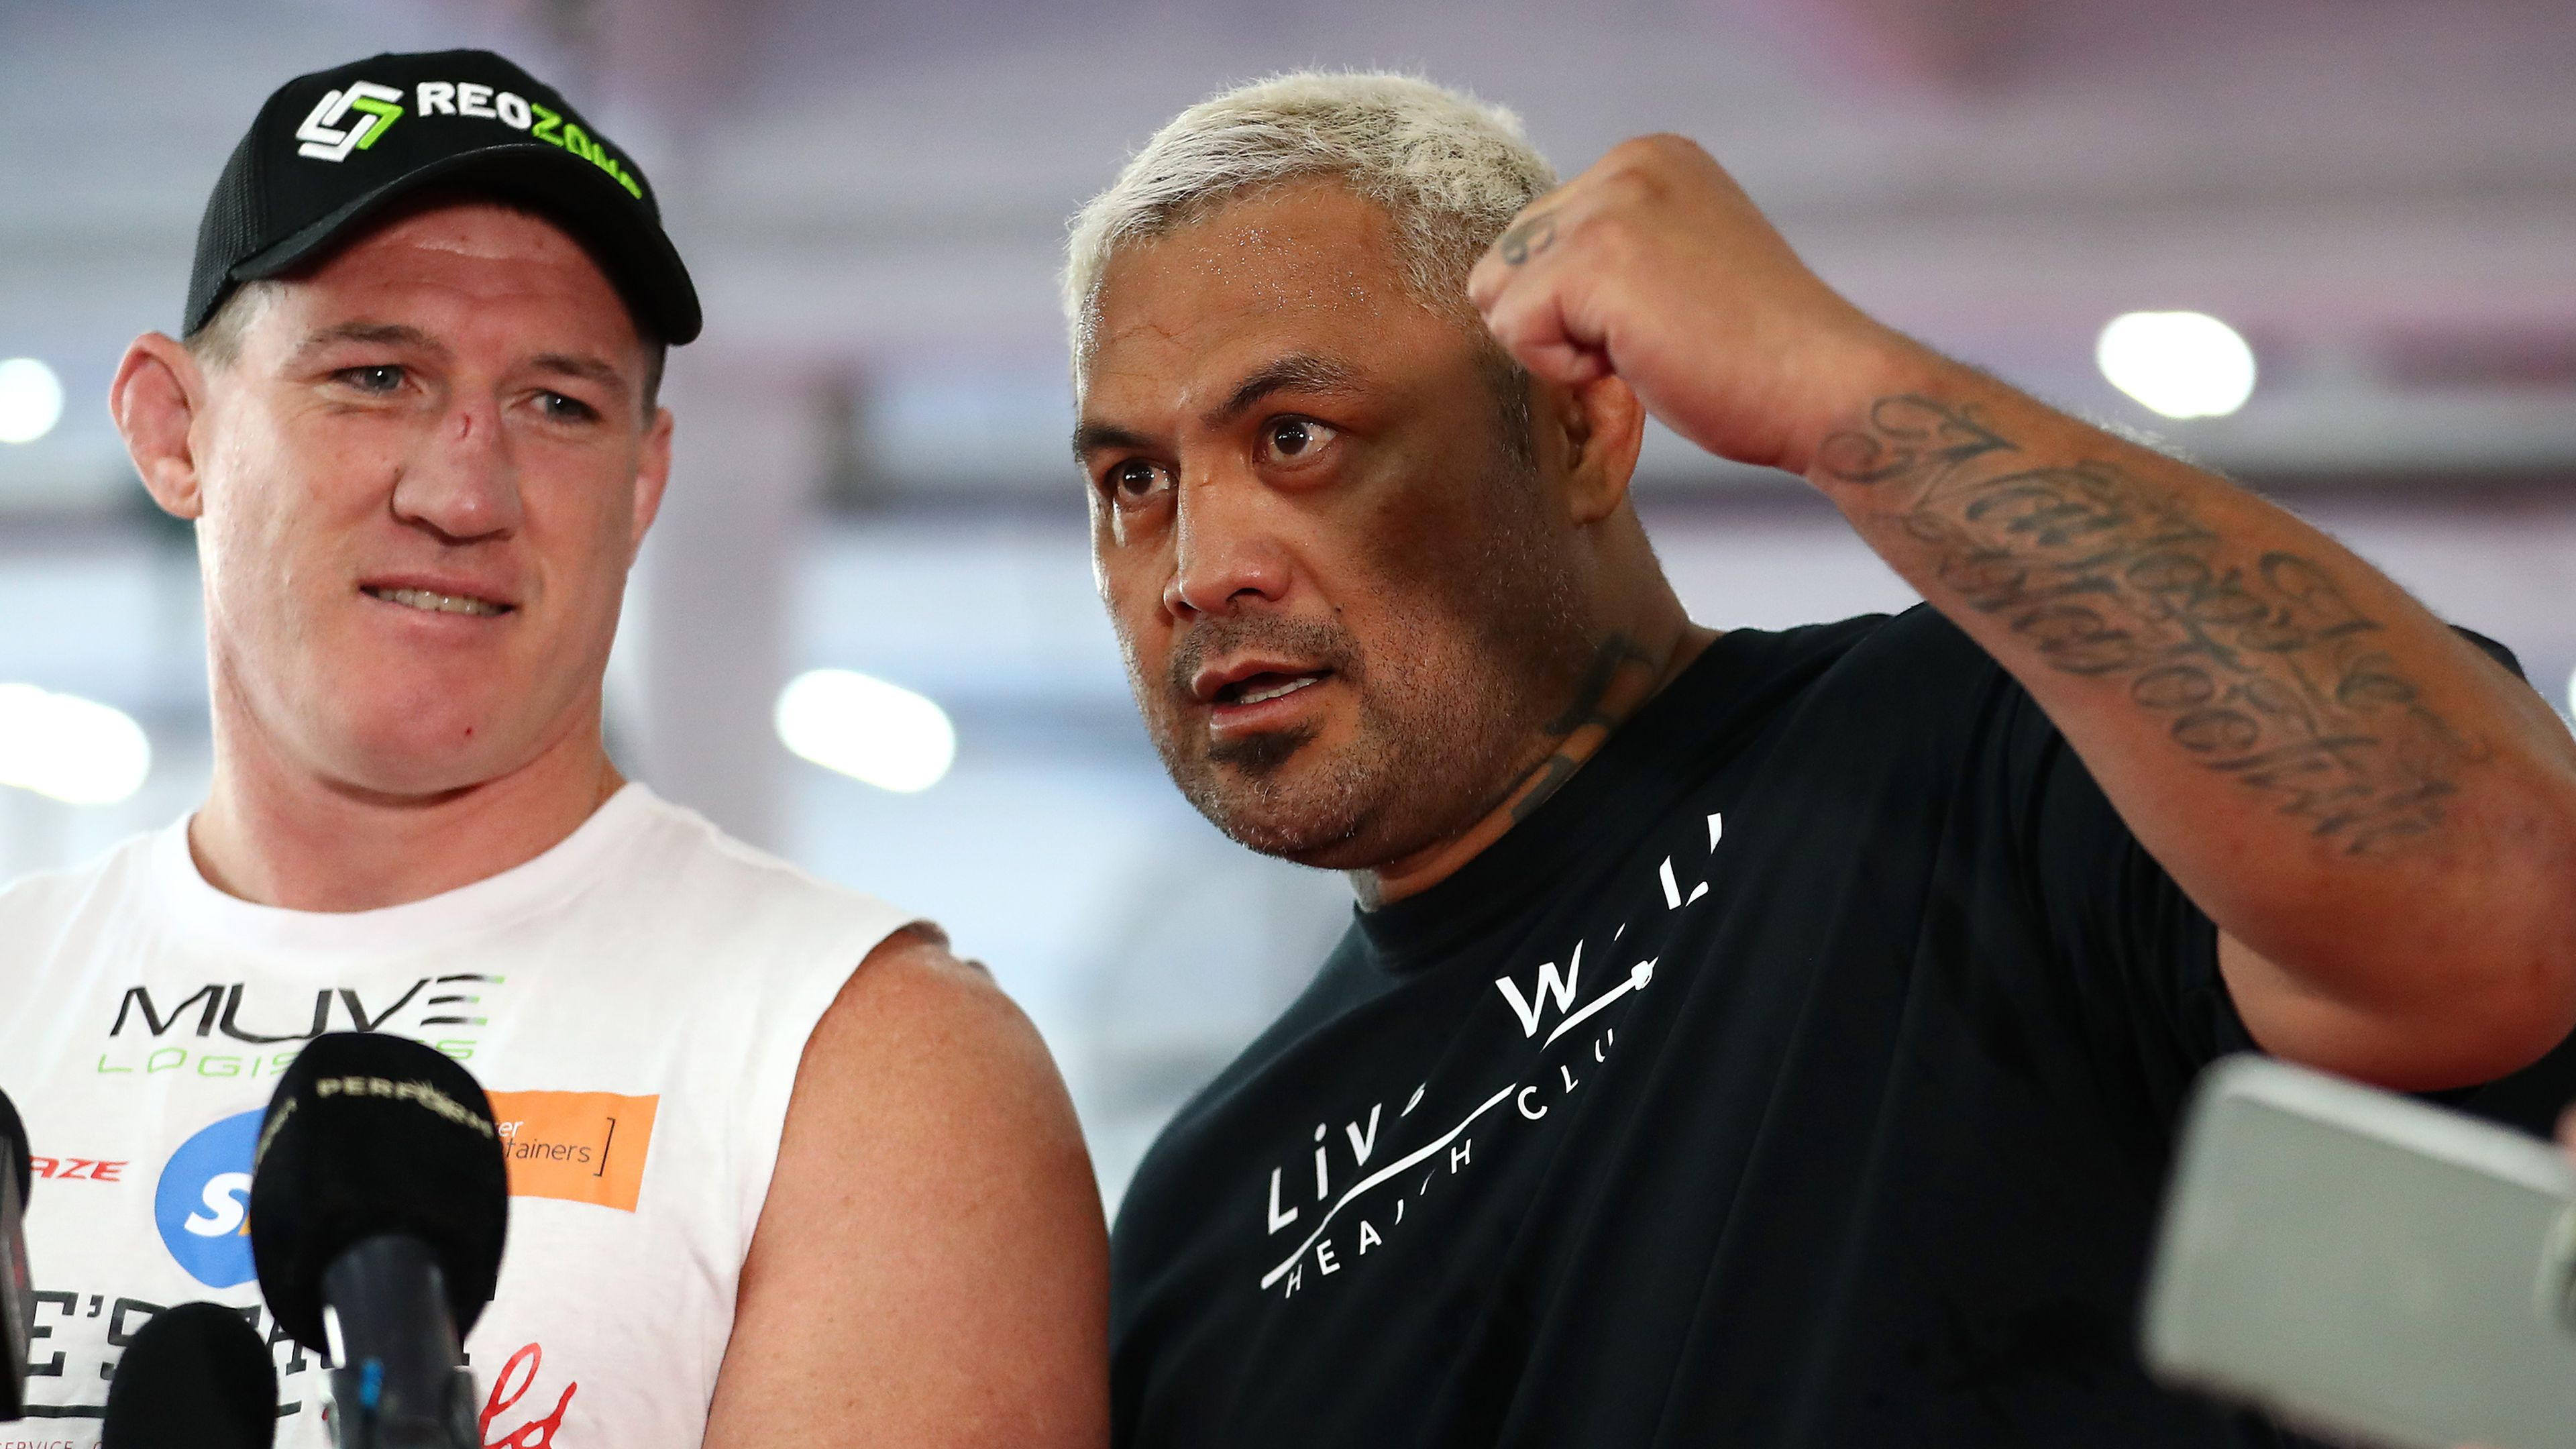 Paul Gallen declares Mark Hunt's knockout power is overrated ahead of Sydney Superfight